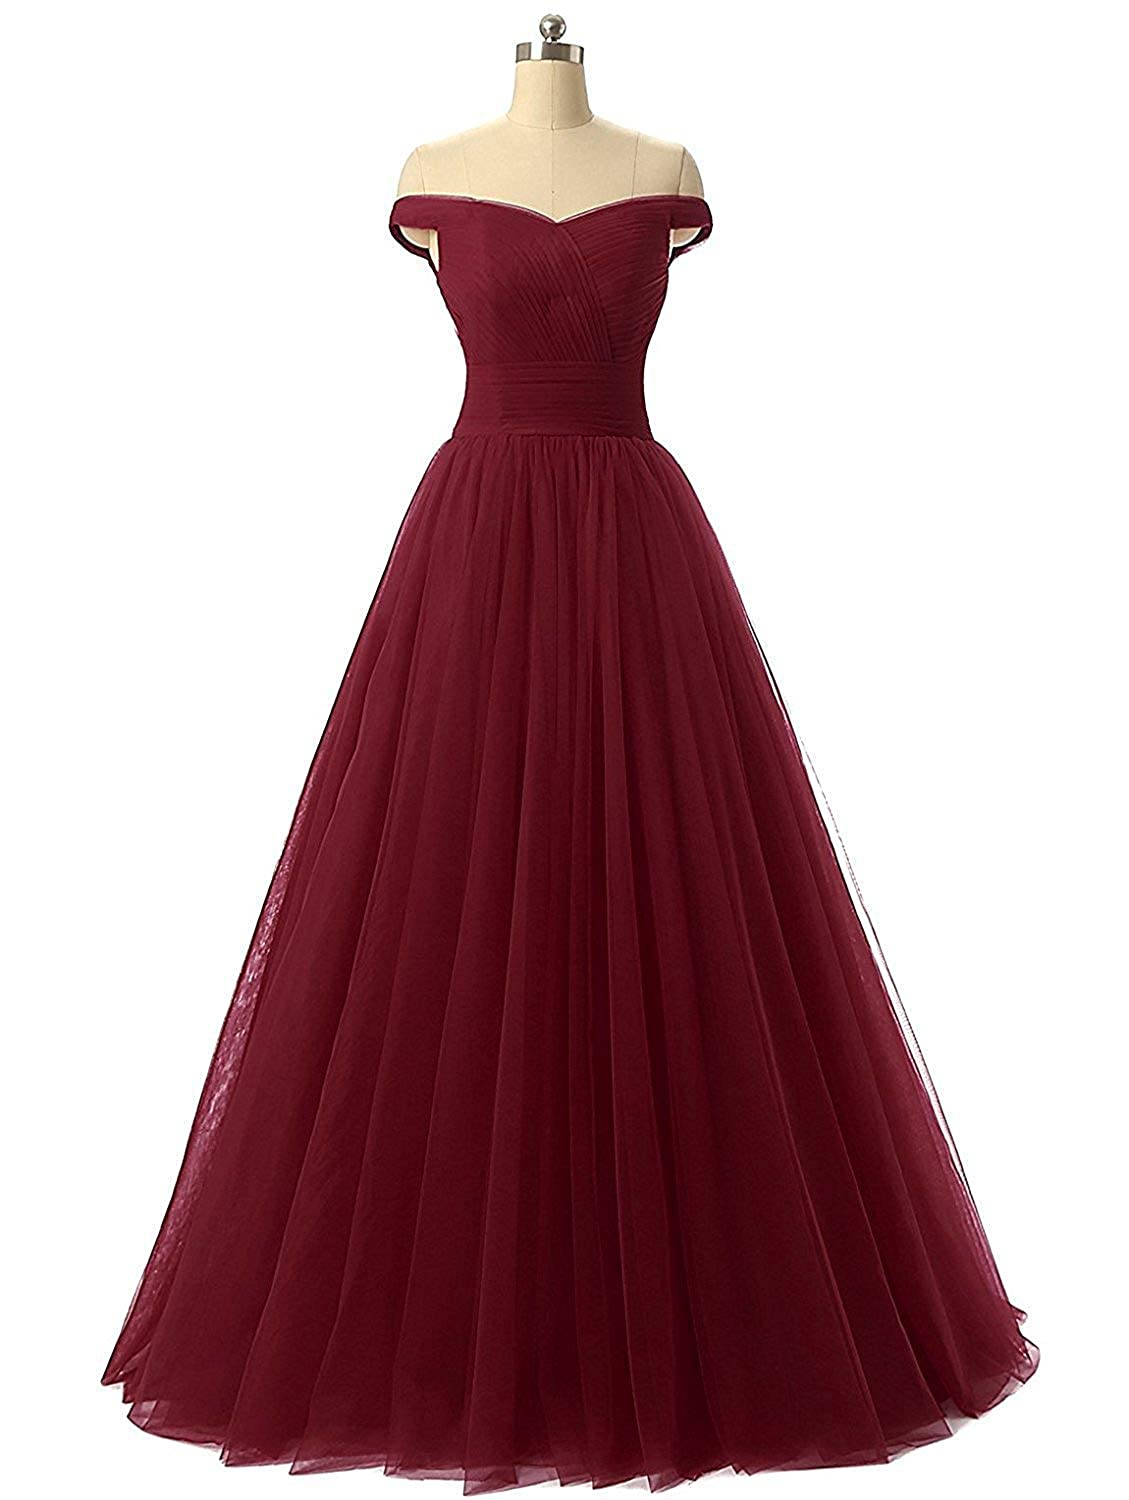 Burgundy Diydress Aline Tulle Prom Formal Evening Homecoming Dress Ball Gown